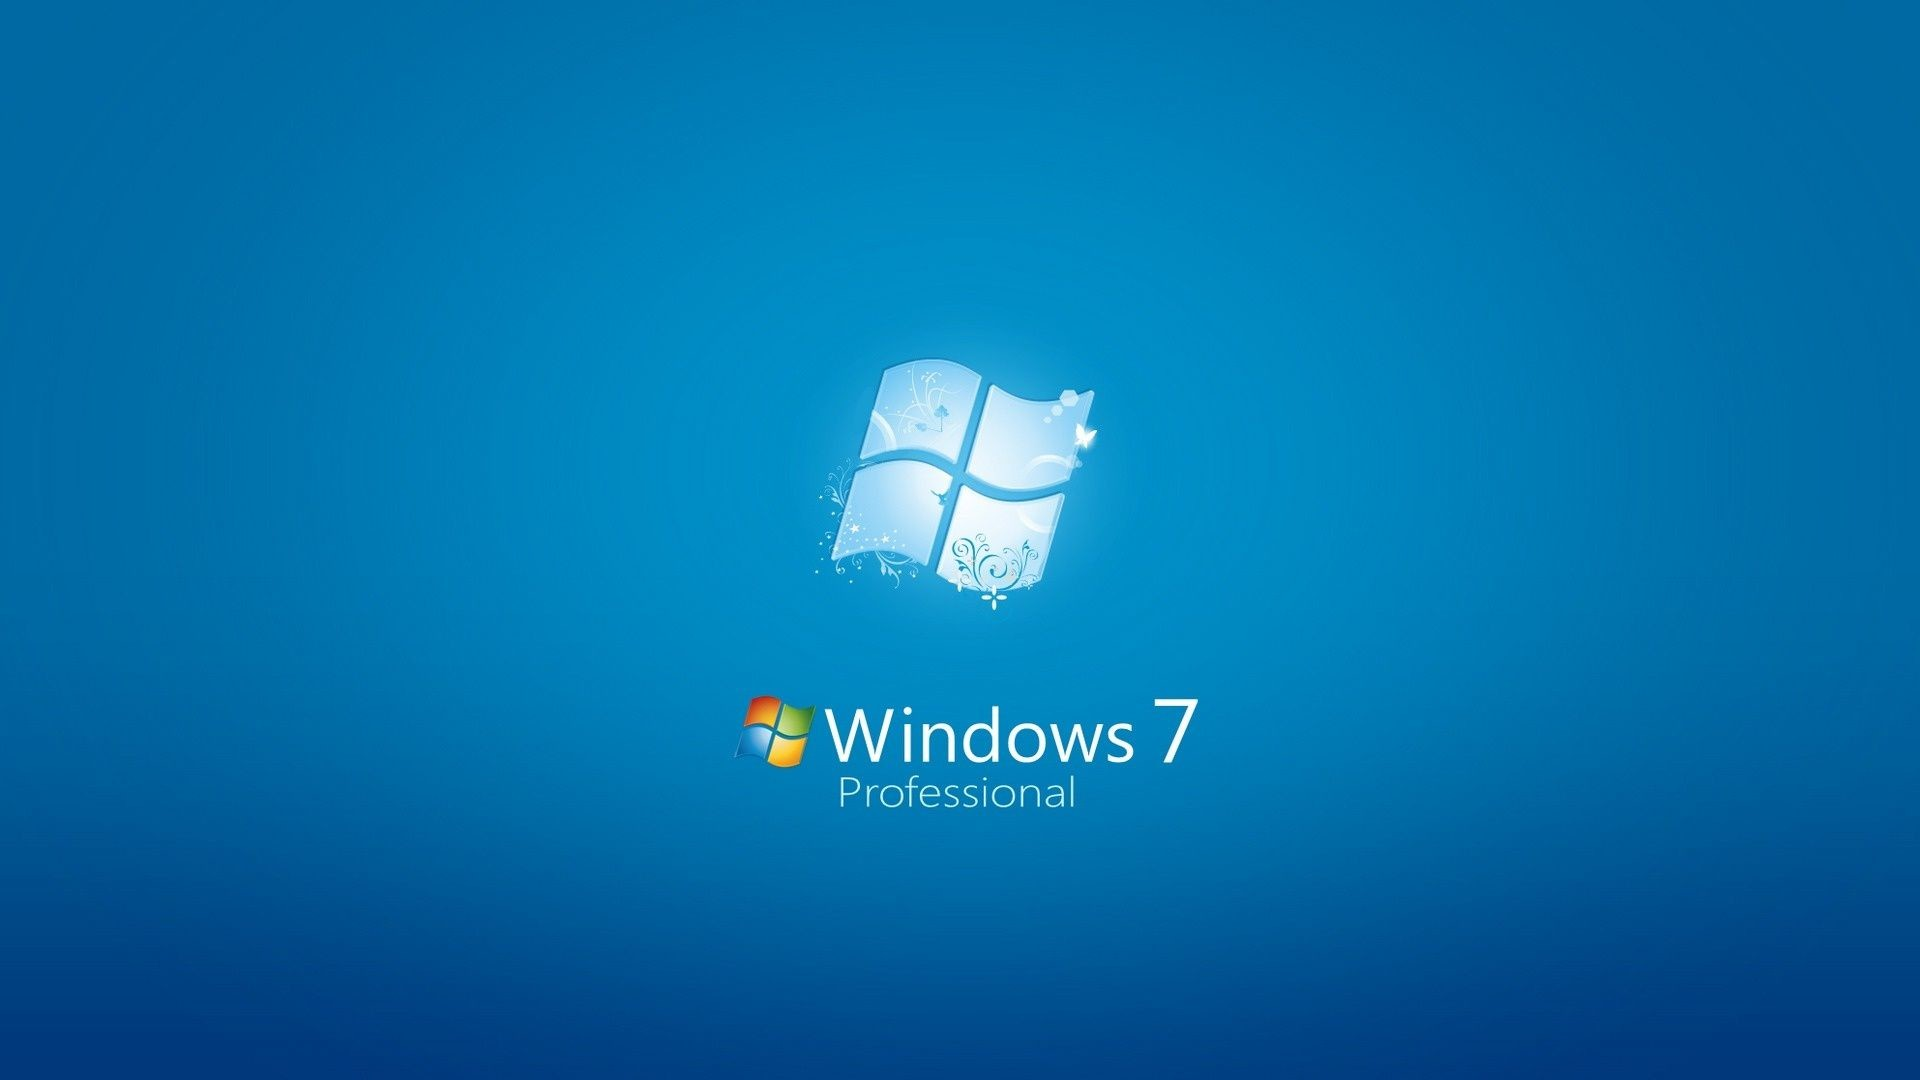 Windows 7 Ultimate Desktop Background 56 images 1920x1080